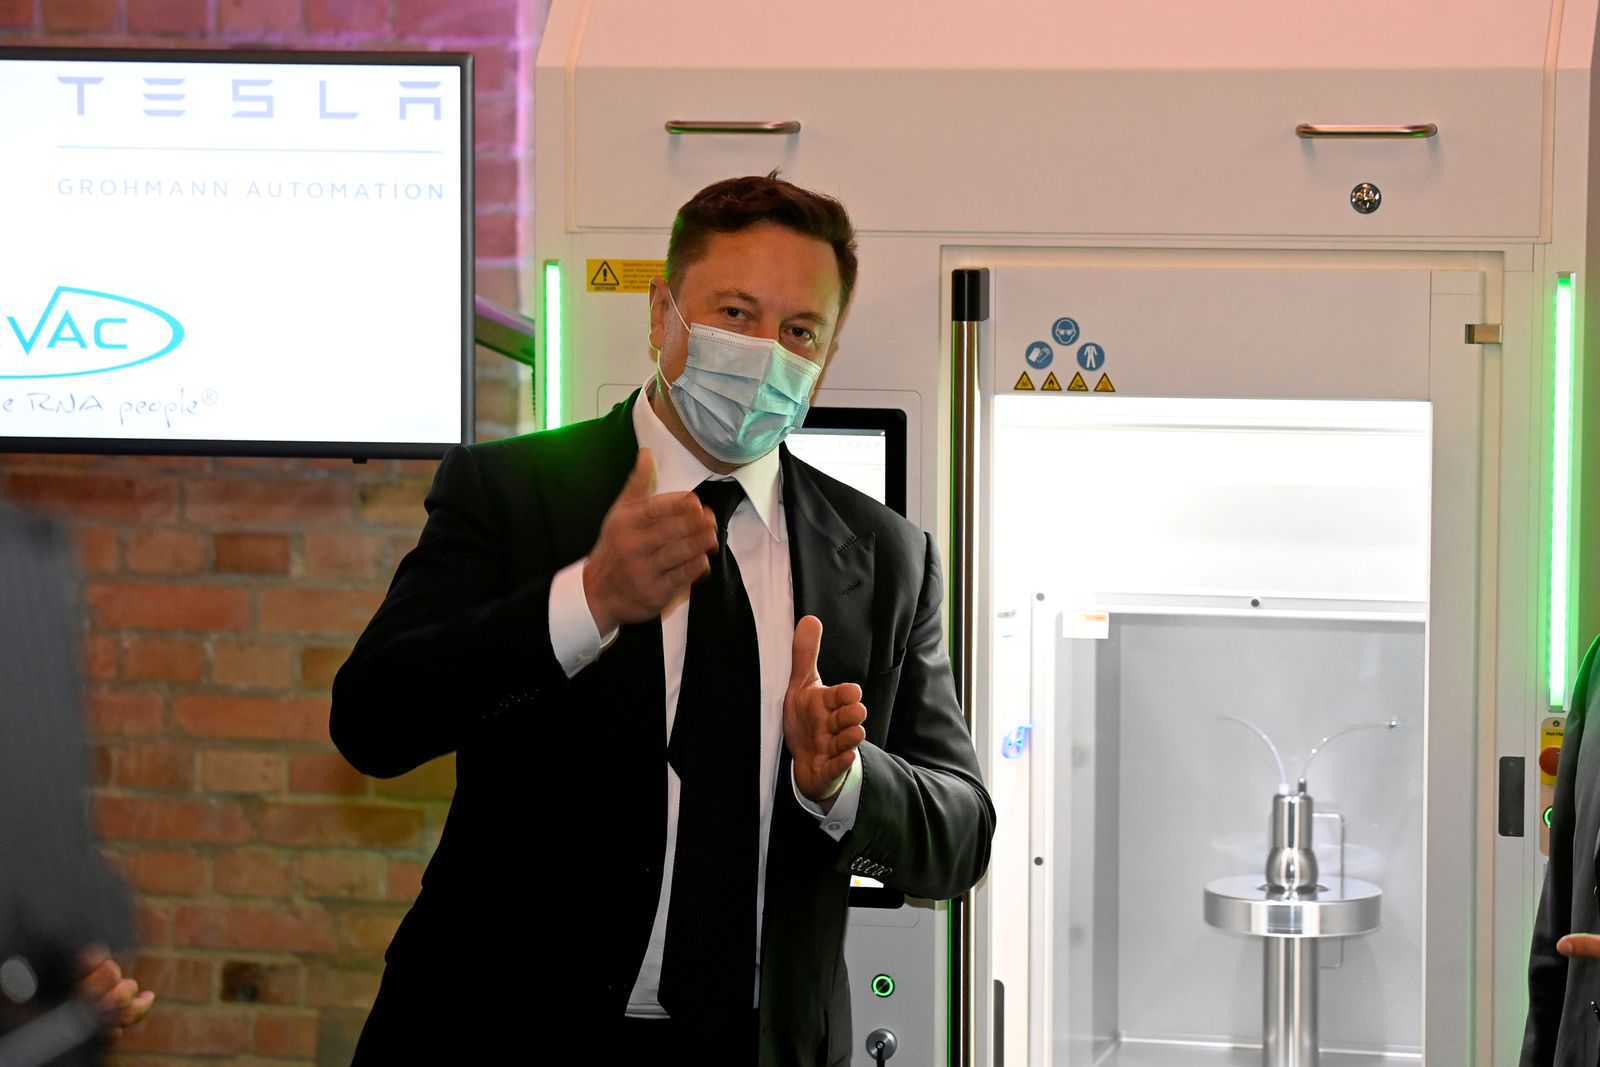 Futurist entrepreneur Musk presents RNA printer in Berlin